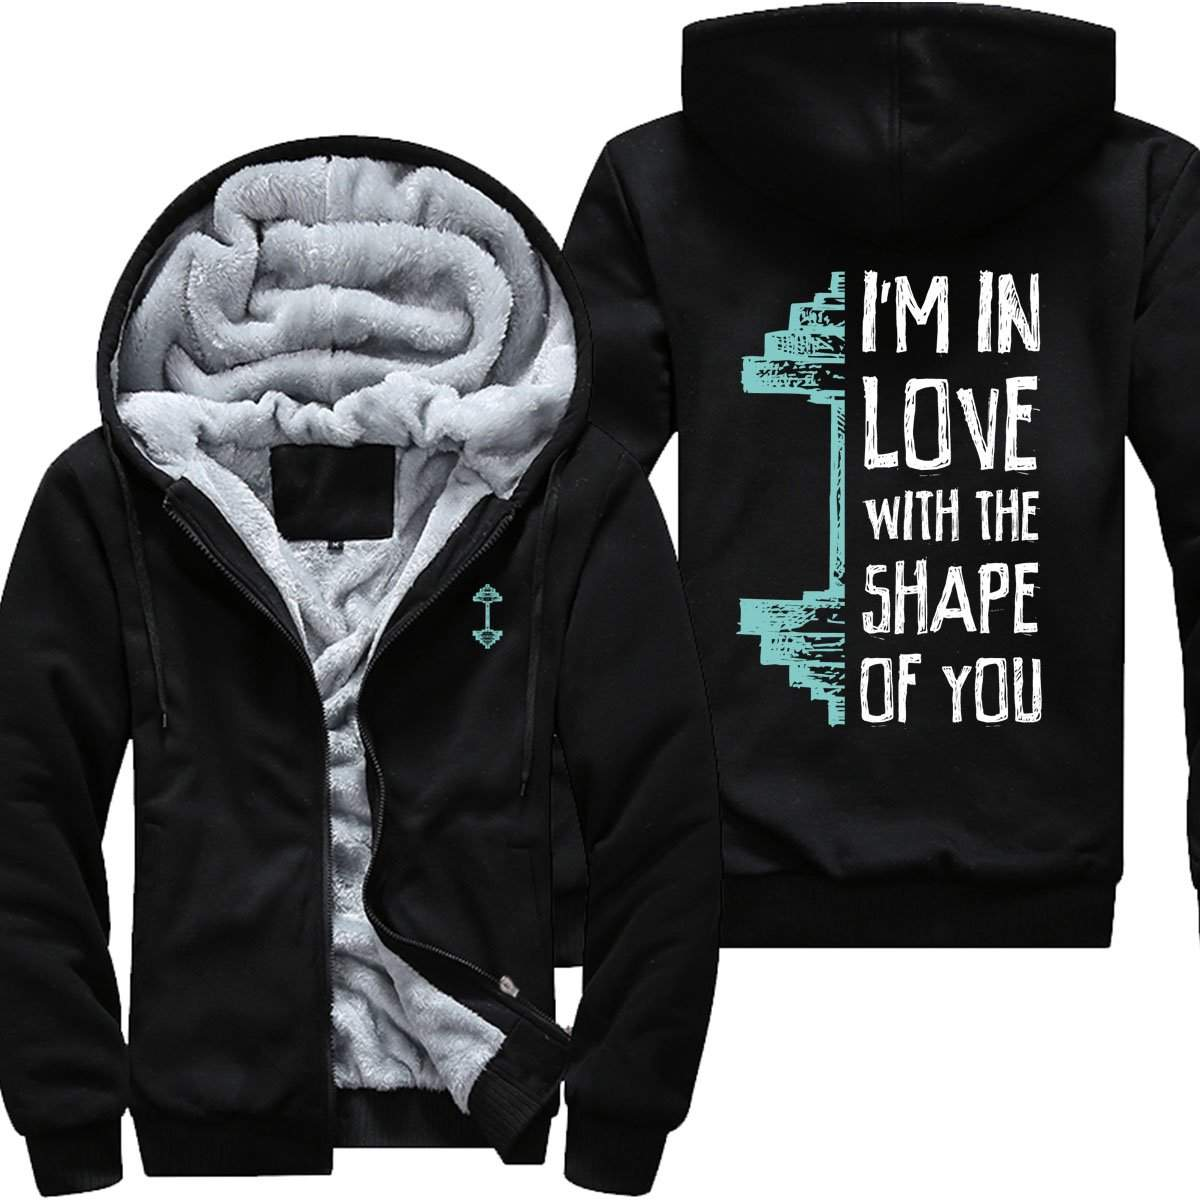 I Am In Love With The Shape of You - Gym Jacket